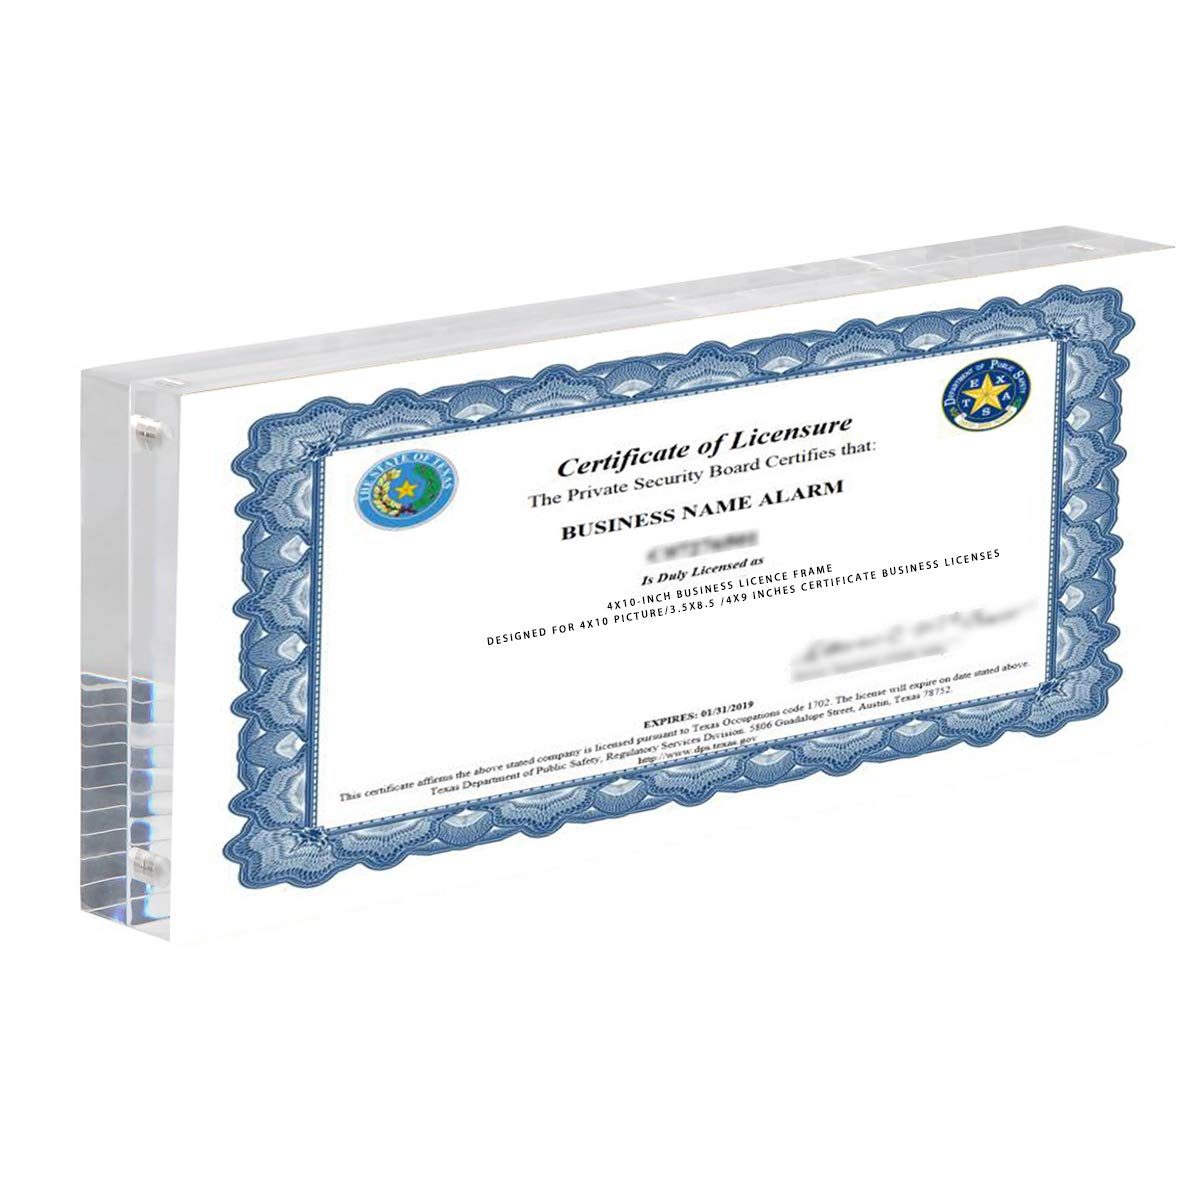 CY craft Acrylic Business License Frame for 4x9 Business License Certificate Desk/Table Top Display,Clear Panoramic Photograph Picture Frame(Full Frame 4x10 Inch),Pack of 1 by CY craft